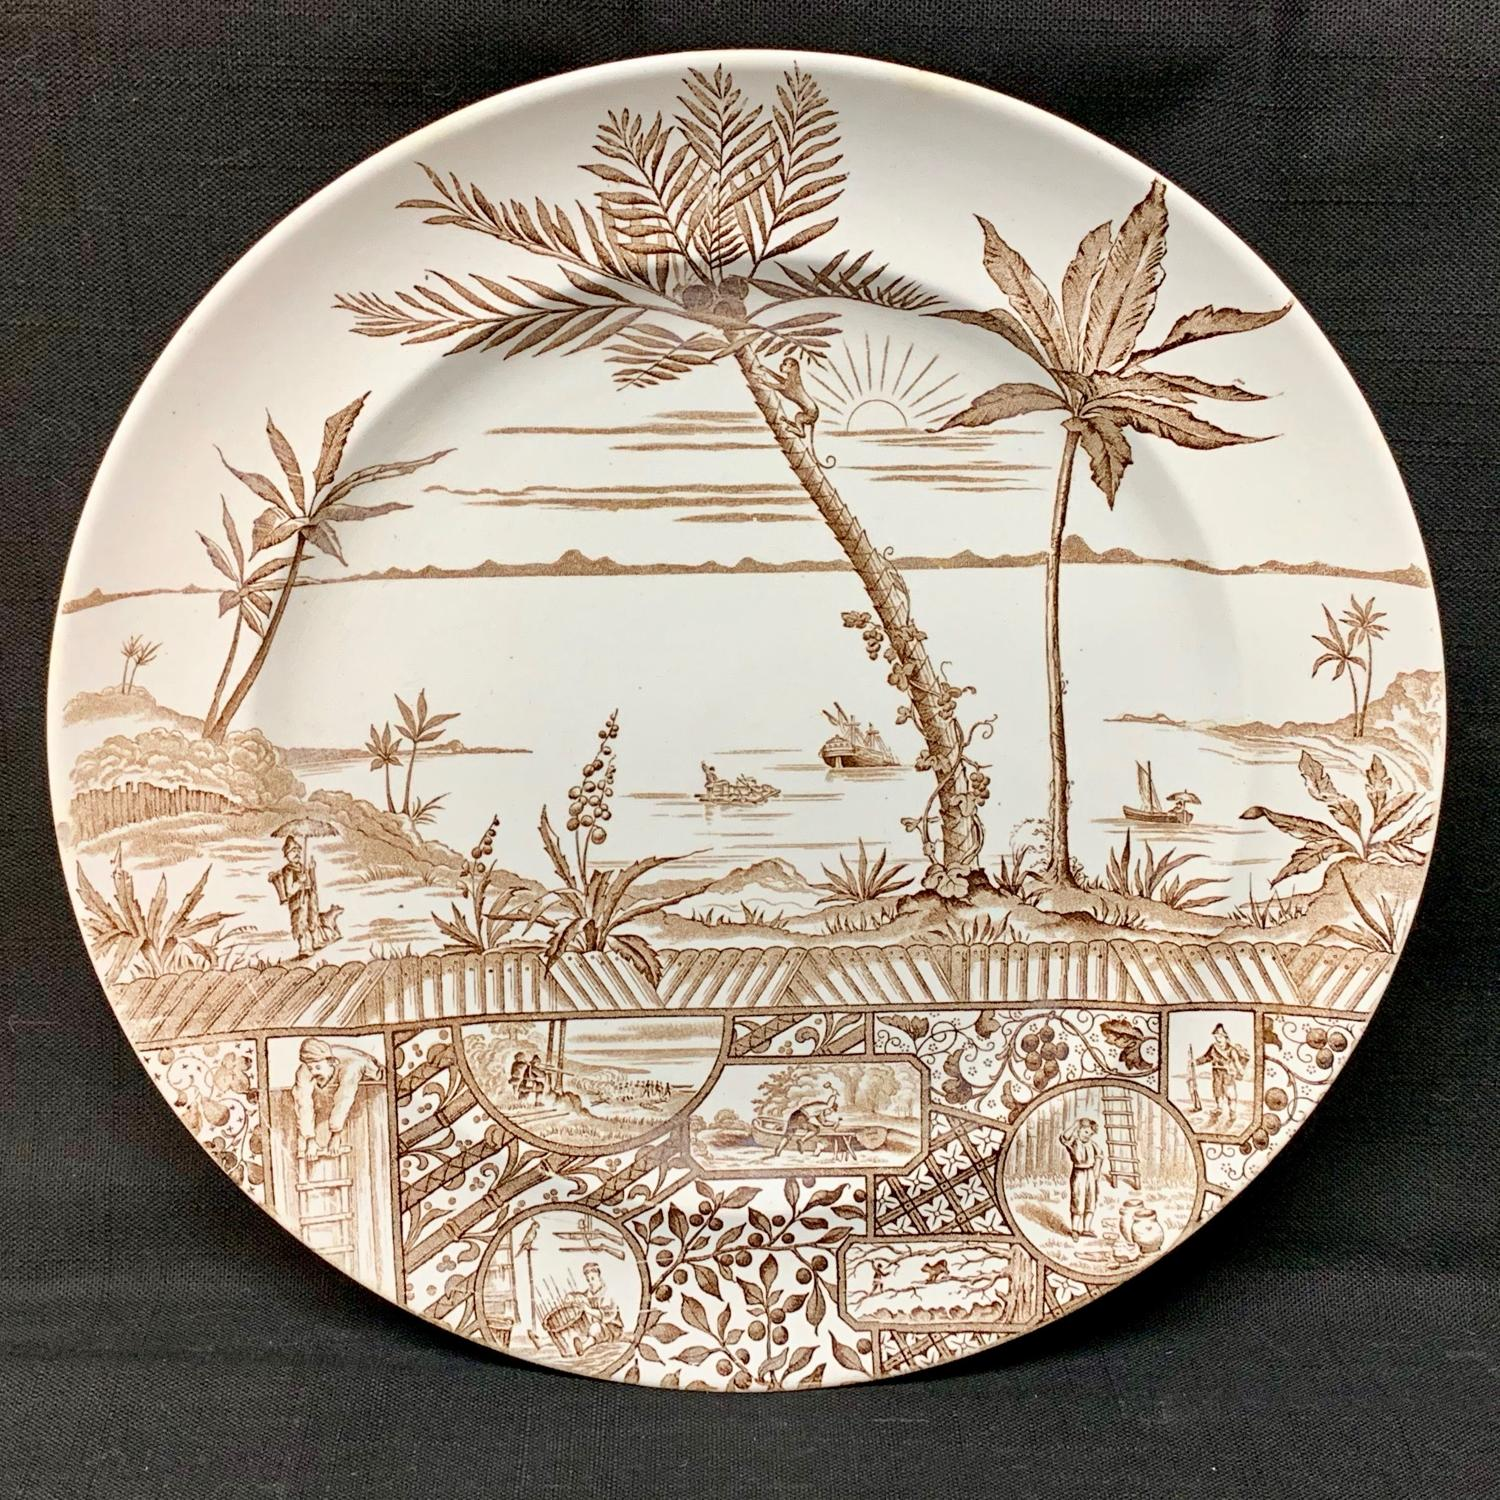 Scarce Aesthetic Movement Large Plate ~ Robinson Crusoe 1881